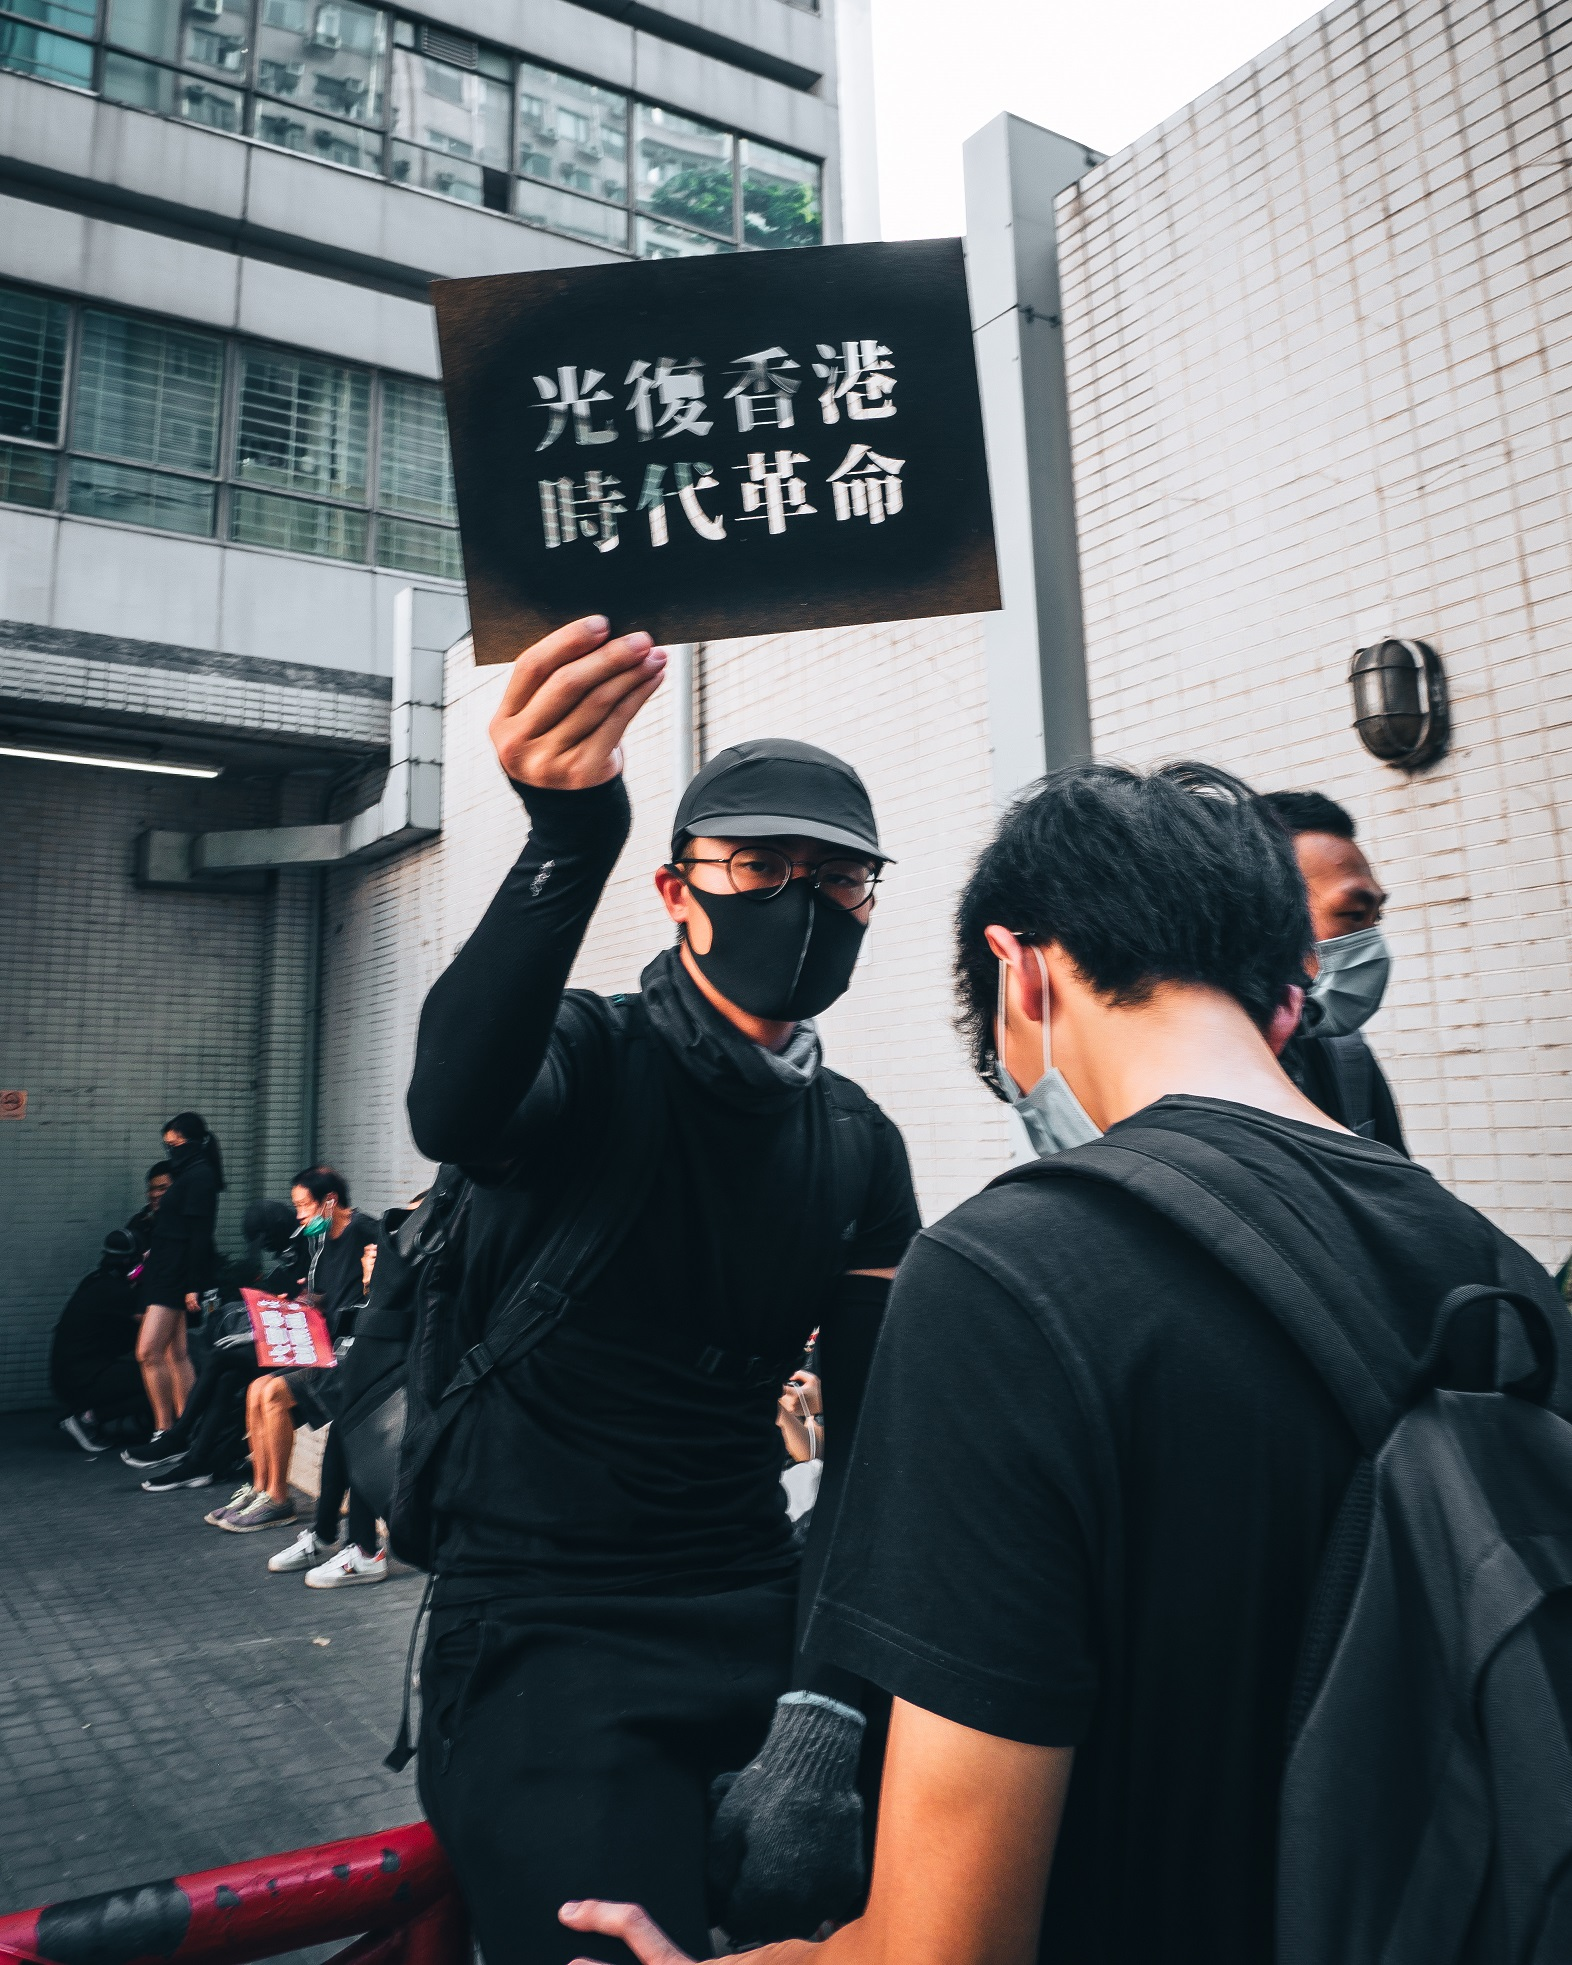 Male protester holding sign in Hong Kong